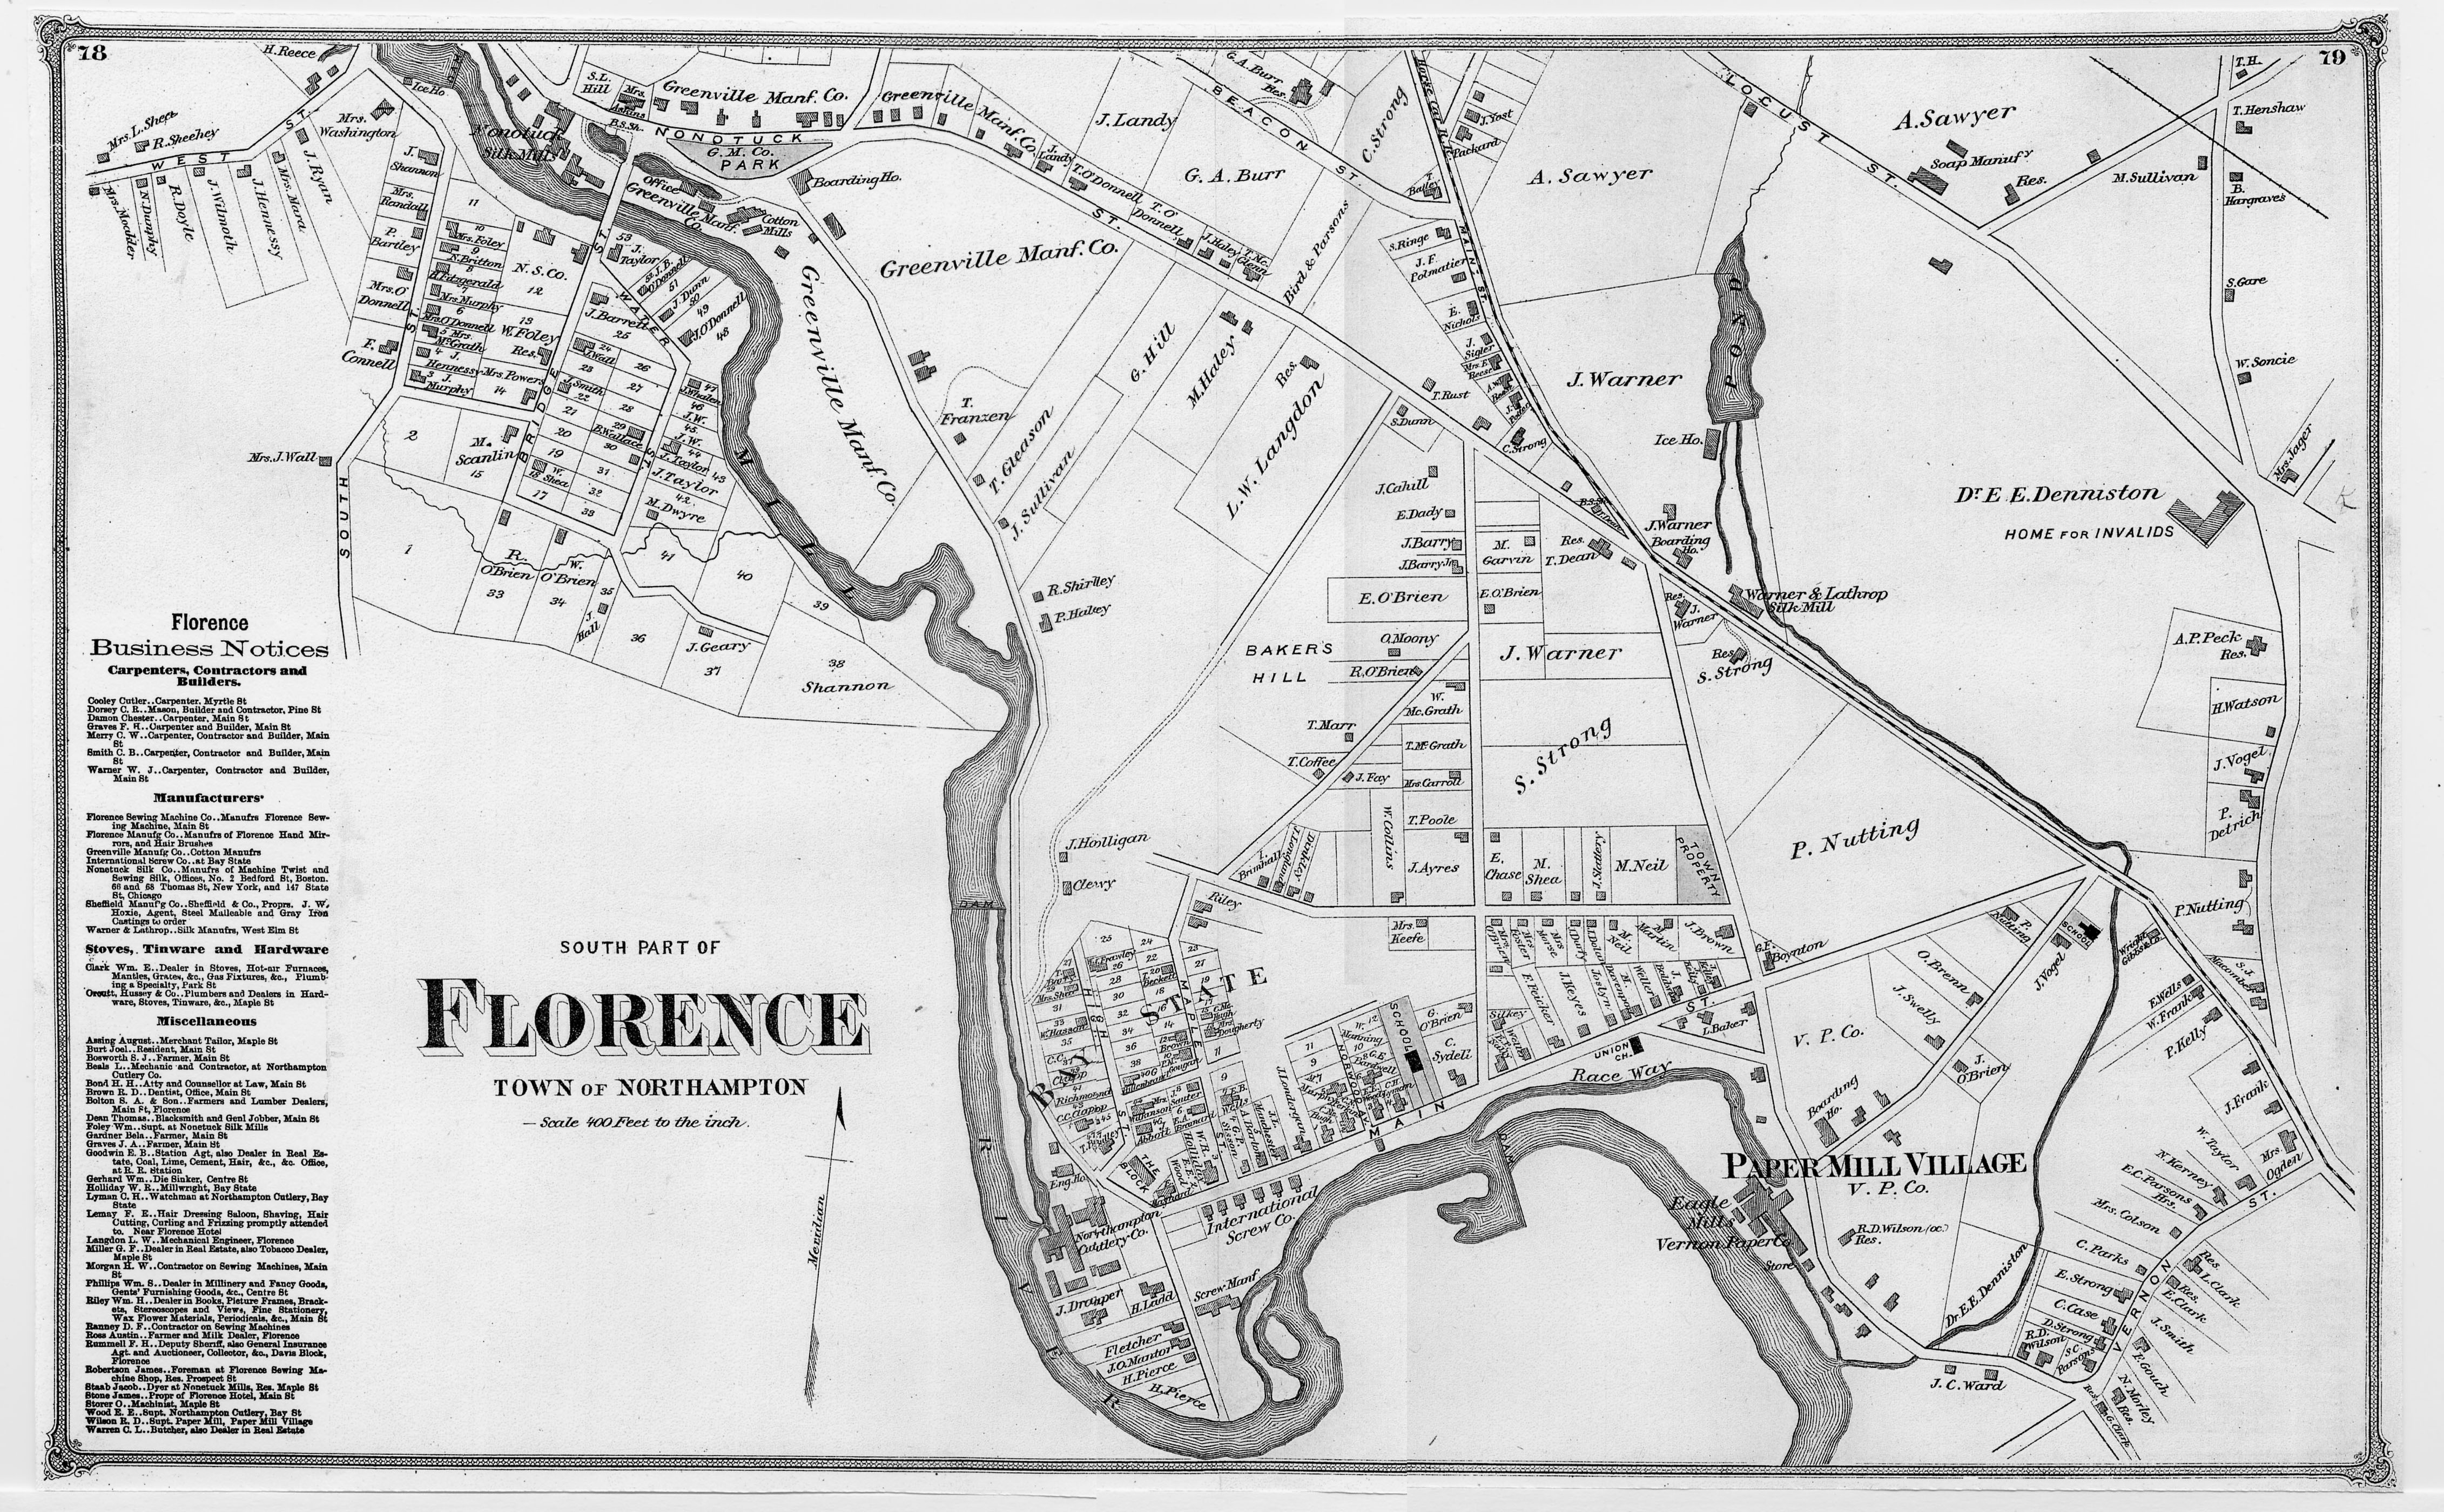 map of Florence in 1873